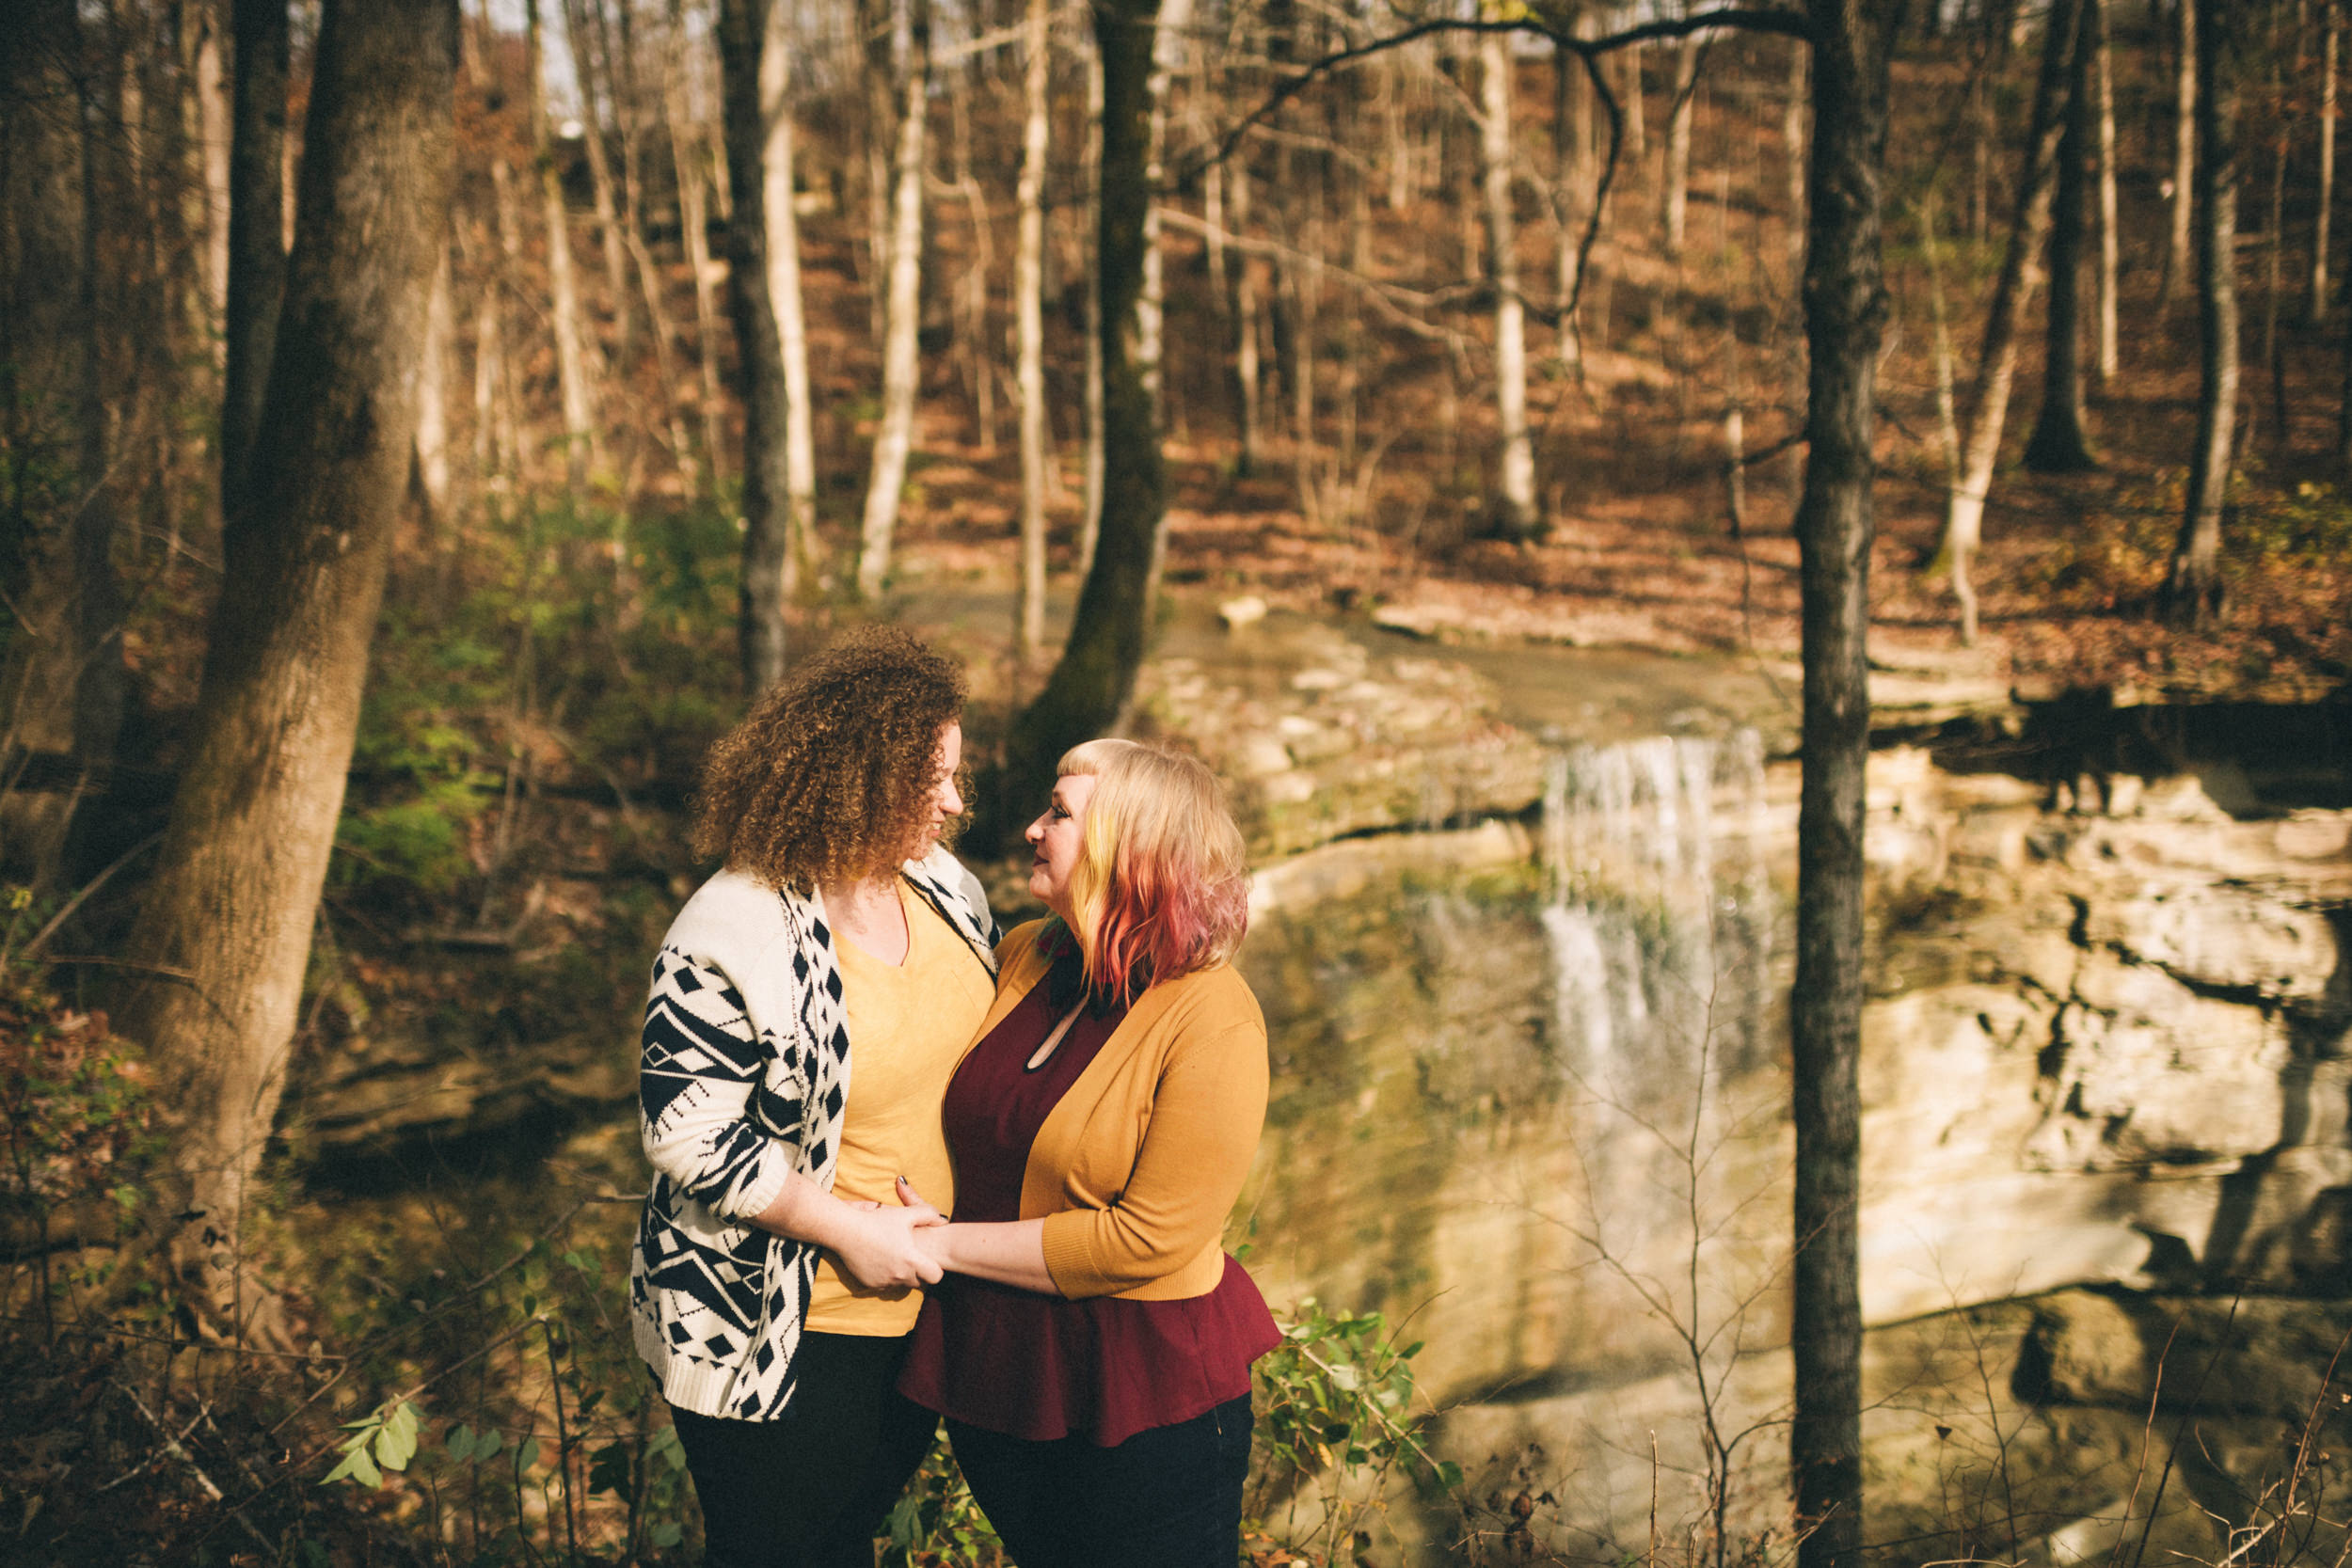 Rebekah + Andrea - Waterfall Adventure Session // 2018